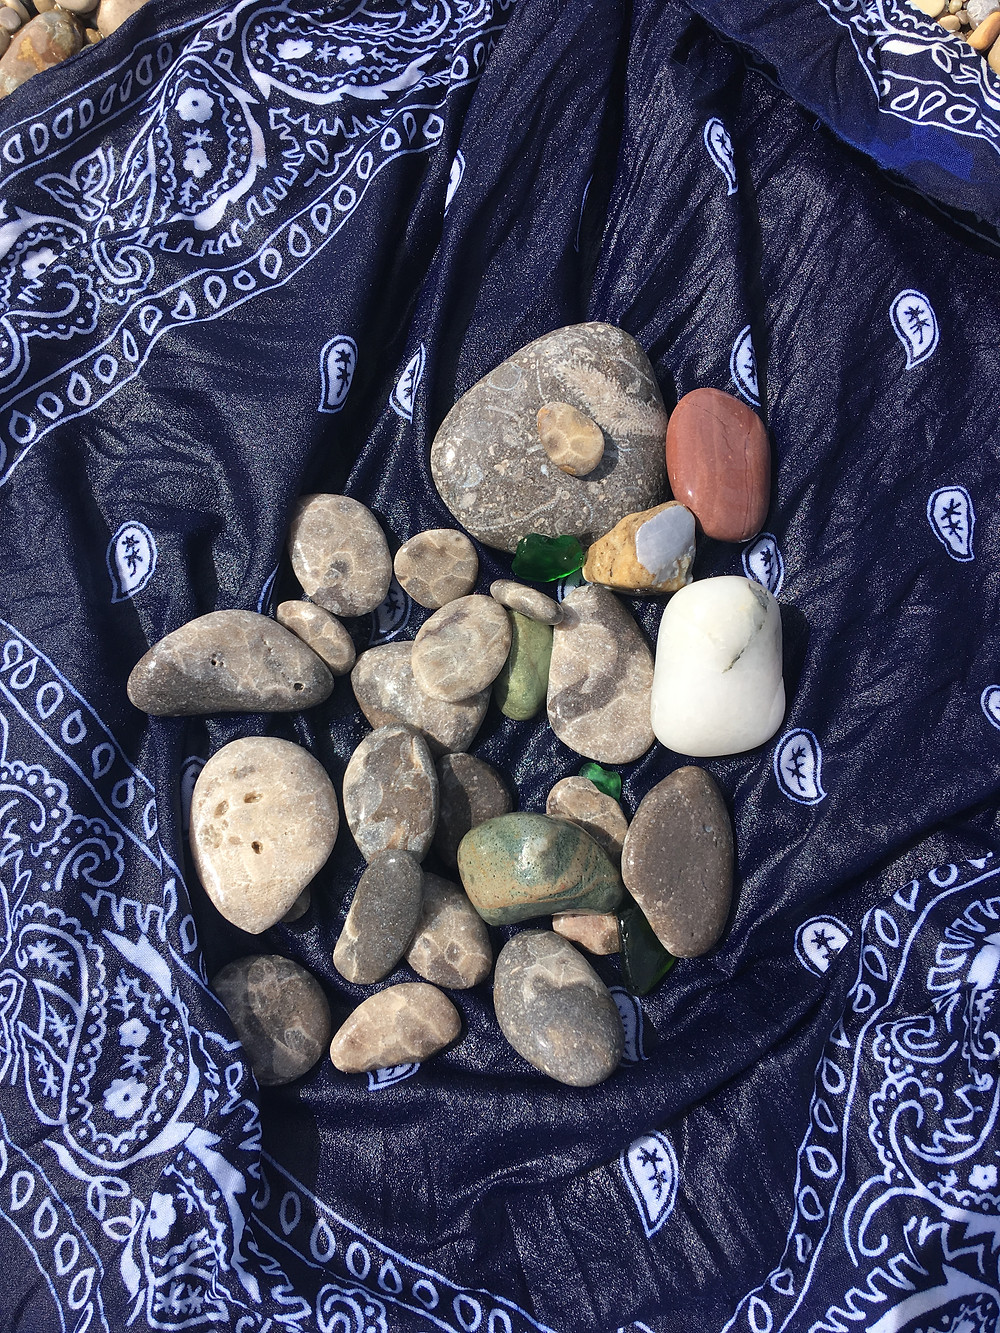 Petoskey stones, beach glass, and rocks in handkerchief